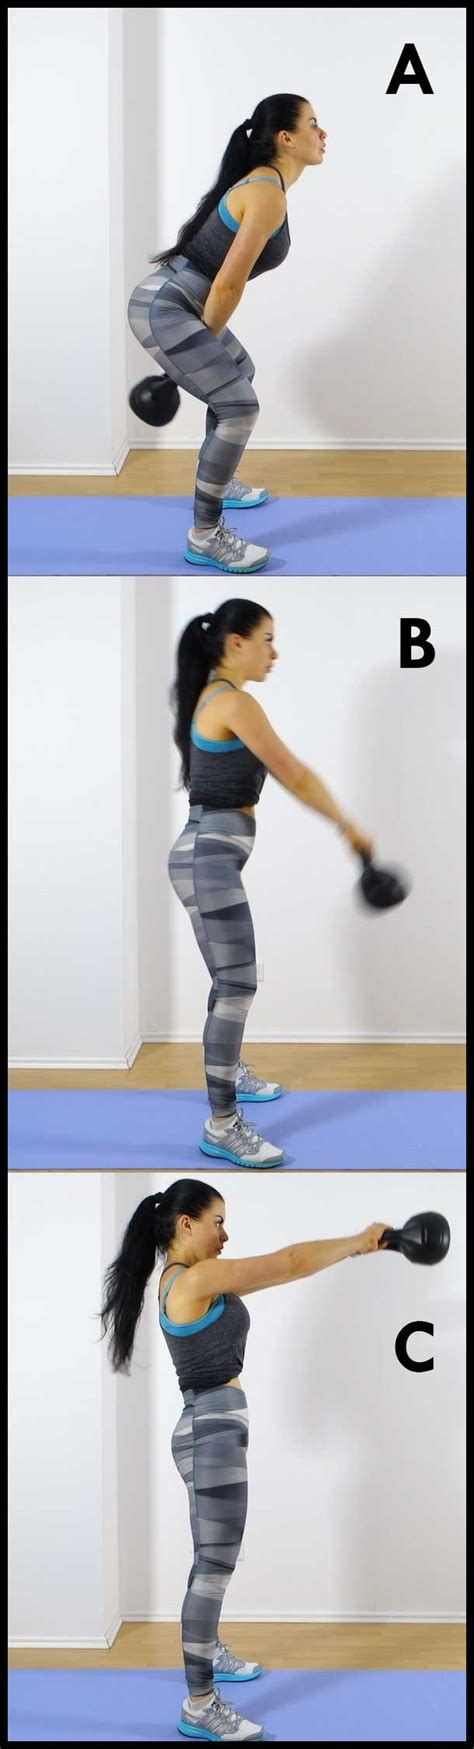 kettlebell swing reps full body attack 5 minute intense kettlebell workout